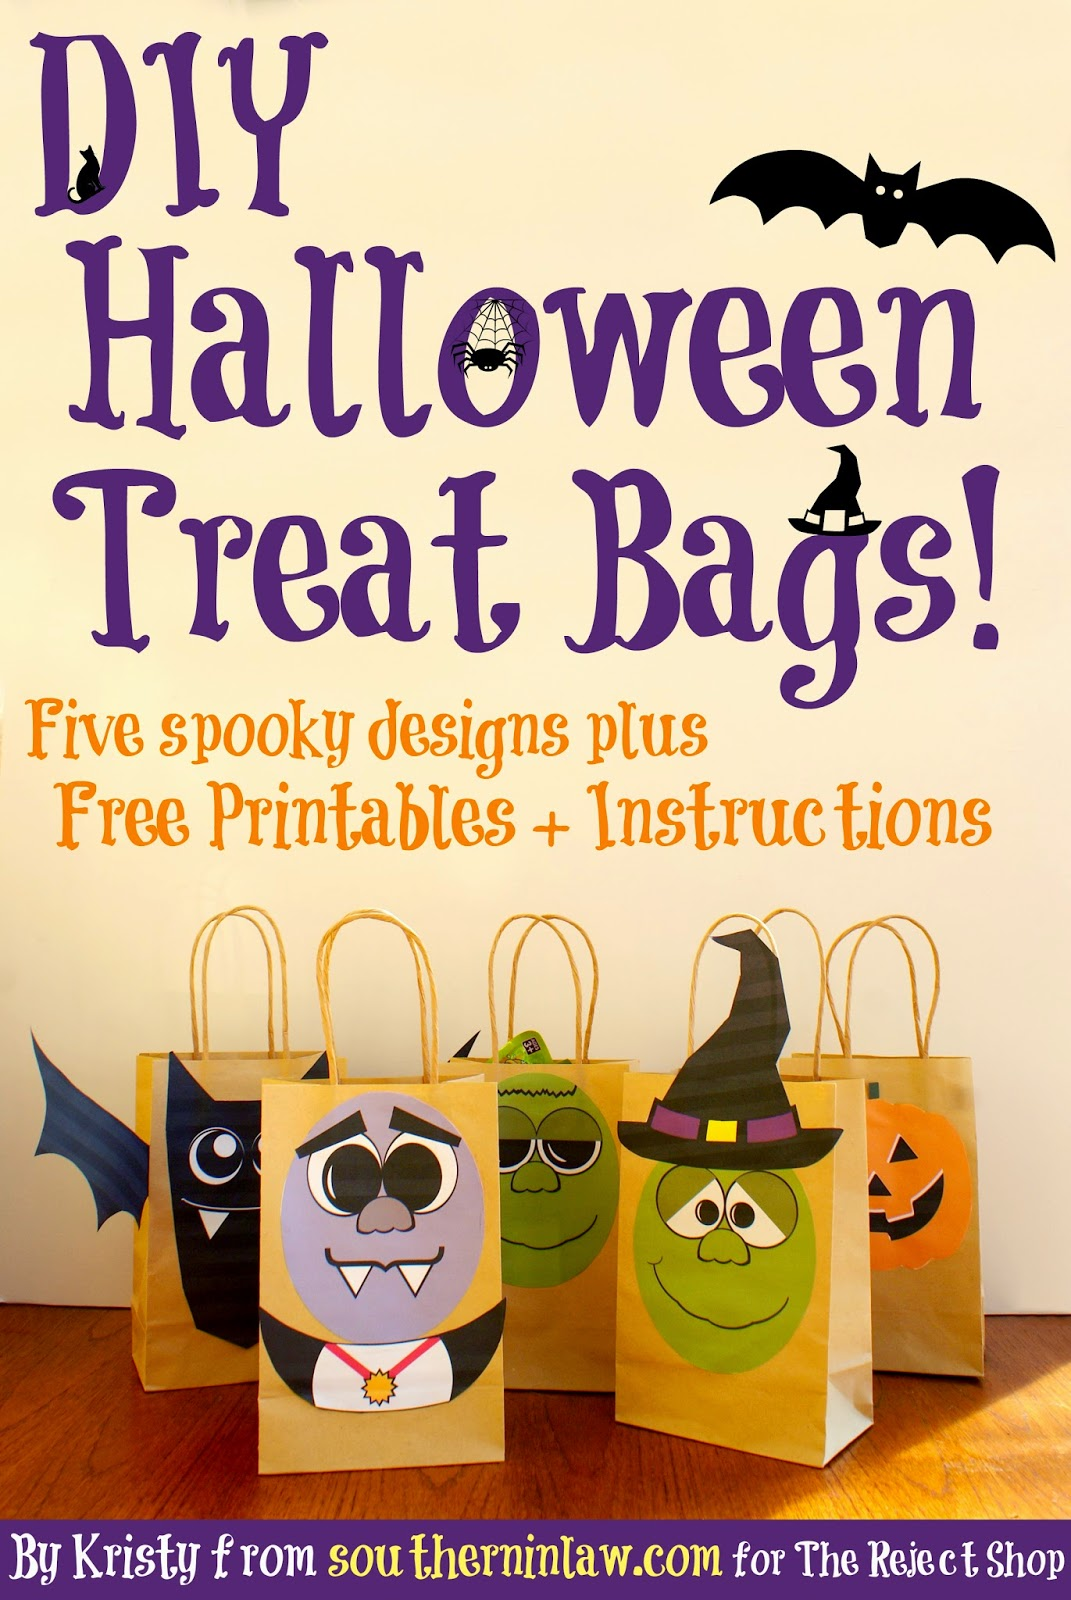 southern in law diy halloween treat bags includes free templates